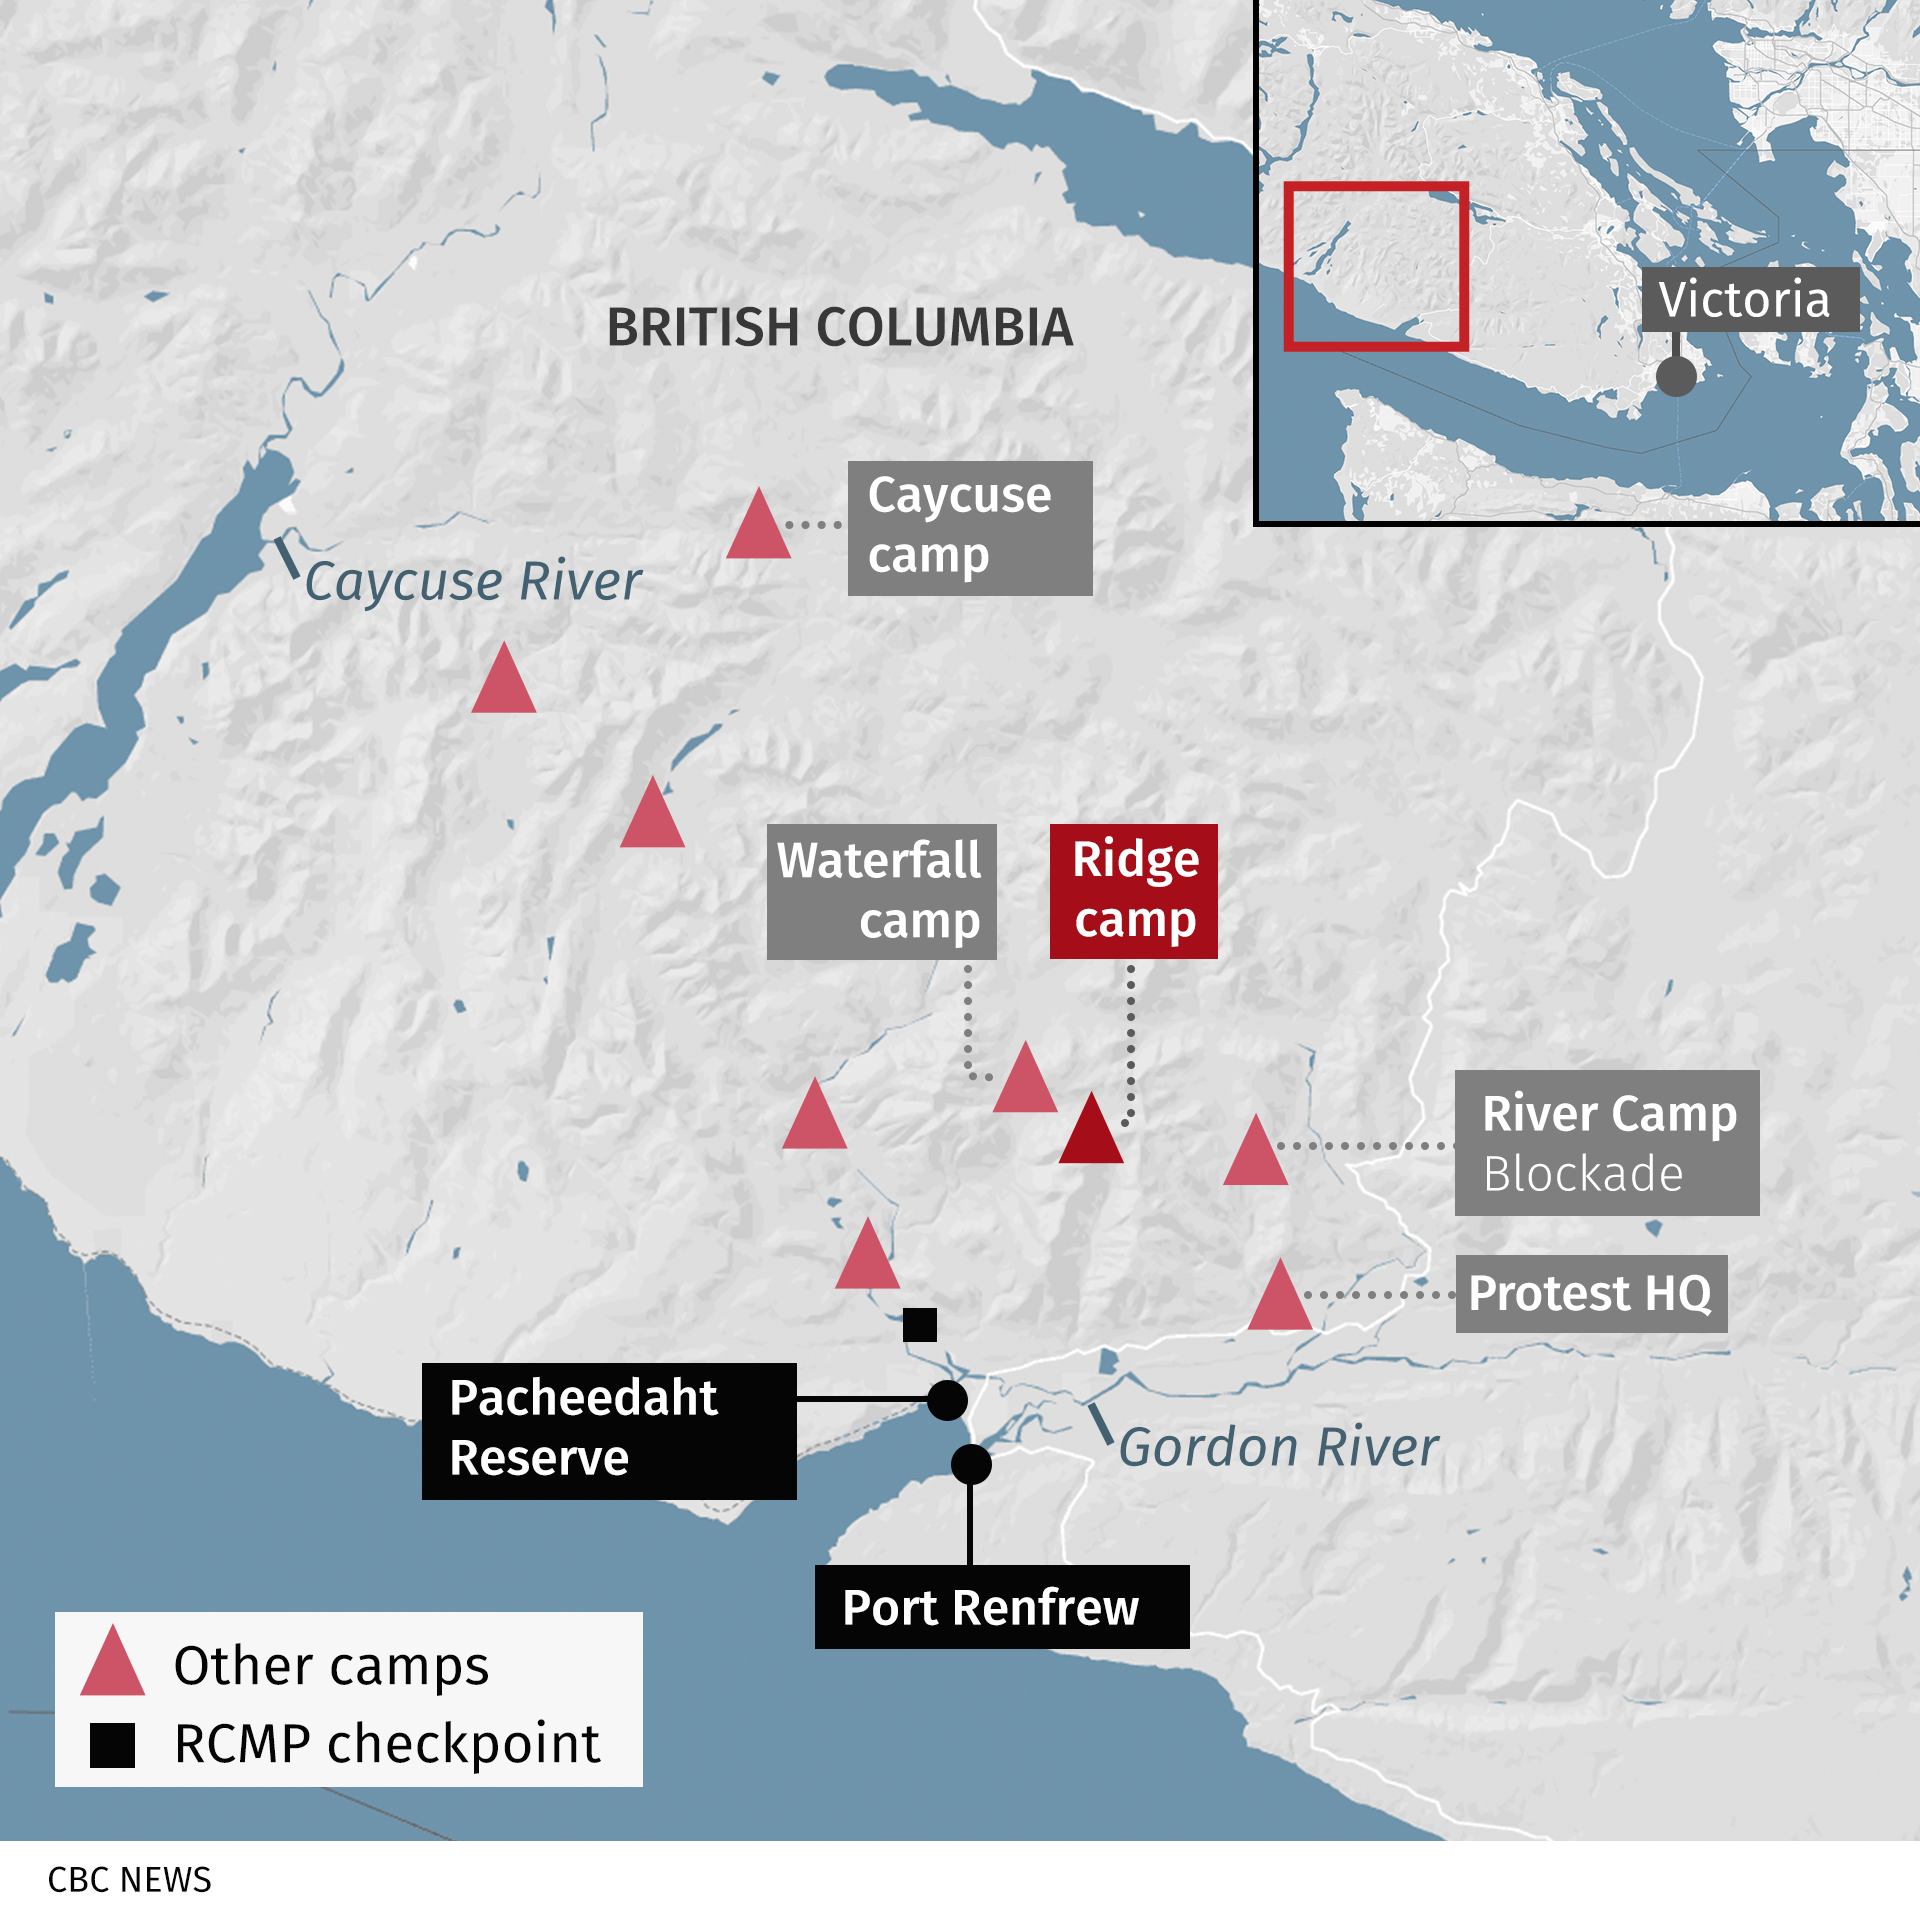 A map of southwestern Vancouver Island showing some of the protest camps opposing logging of old-growth forests.